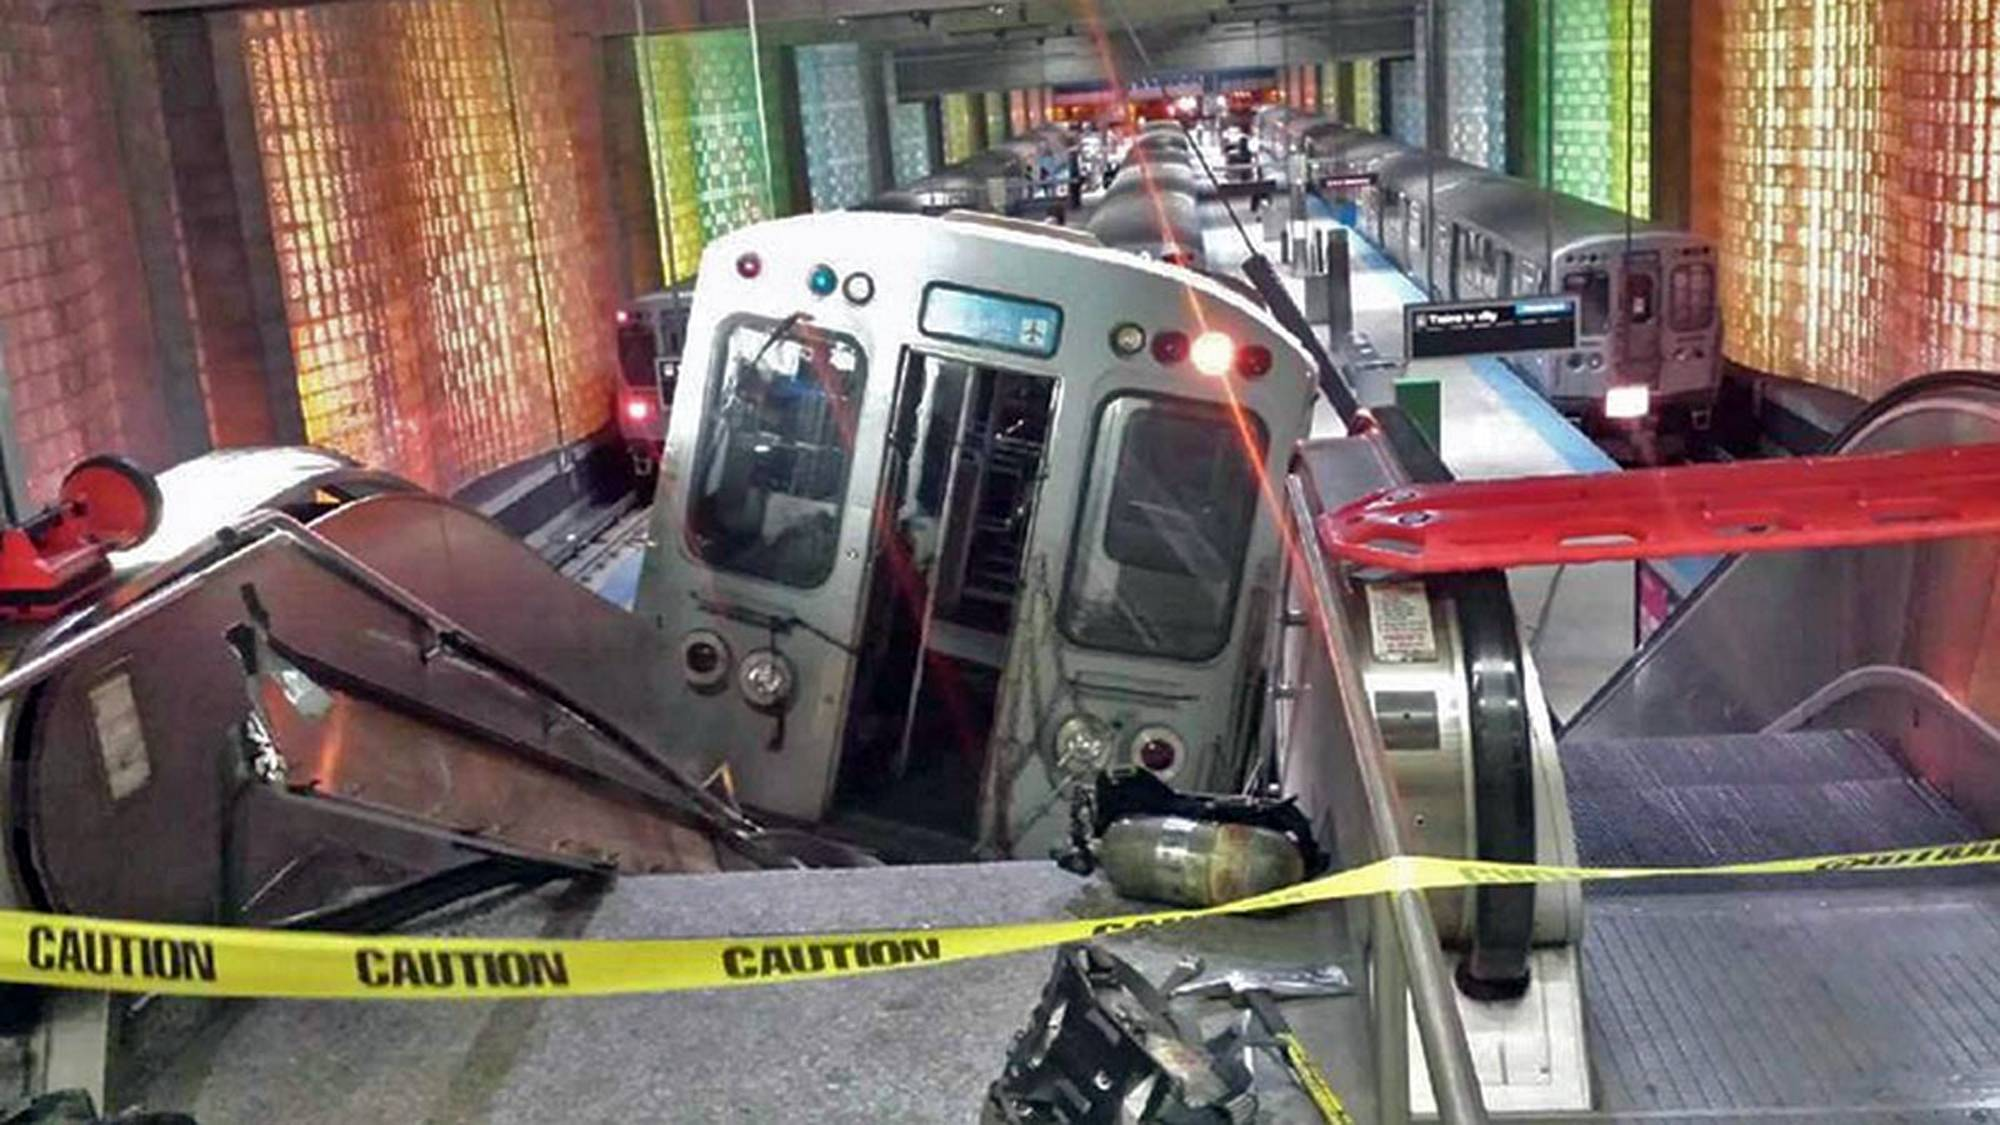 A CTA train car rests on an escalator at the O'Hare Airport station after it derailed early Monday.